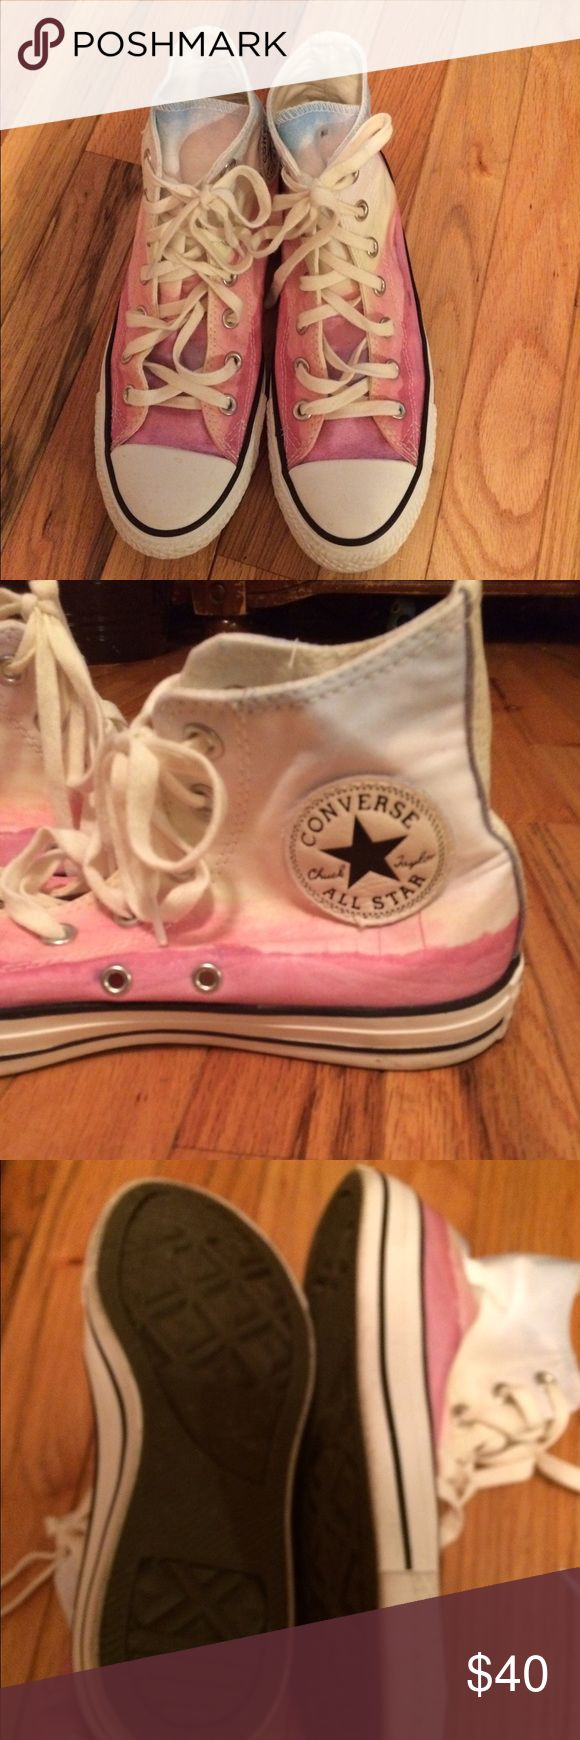 EUC Chuck Taylor All Star Converse EUC women's Chuck Taylor Converse. Pink, blue and white. Does not come in original box. Worn only a few times. Converse Shoes Sneakers